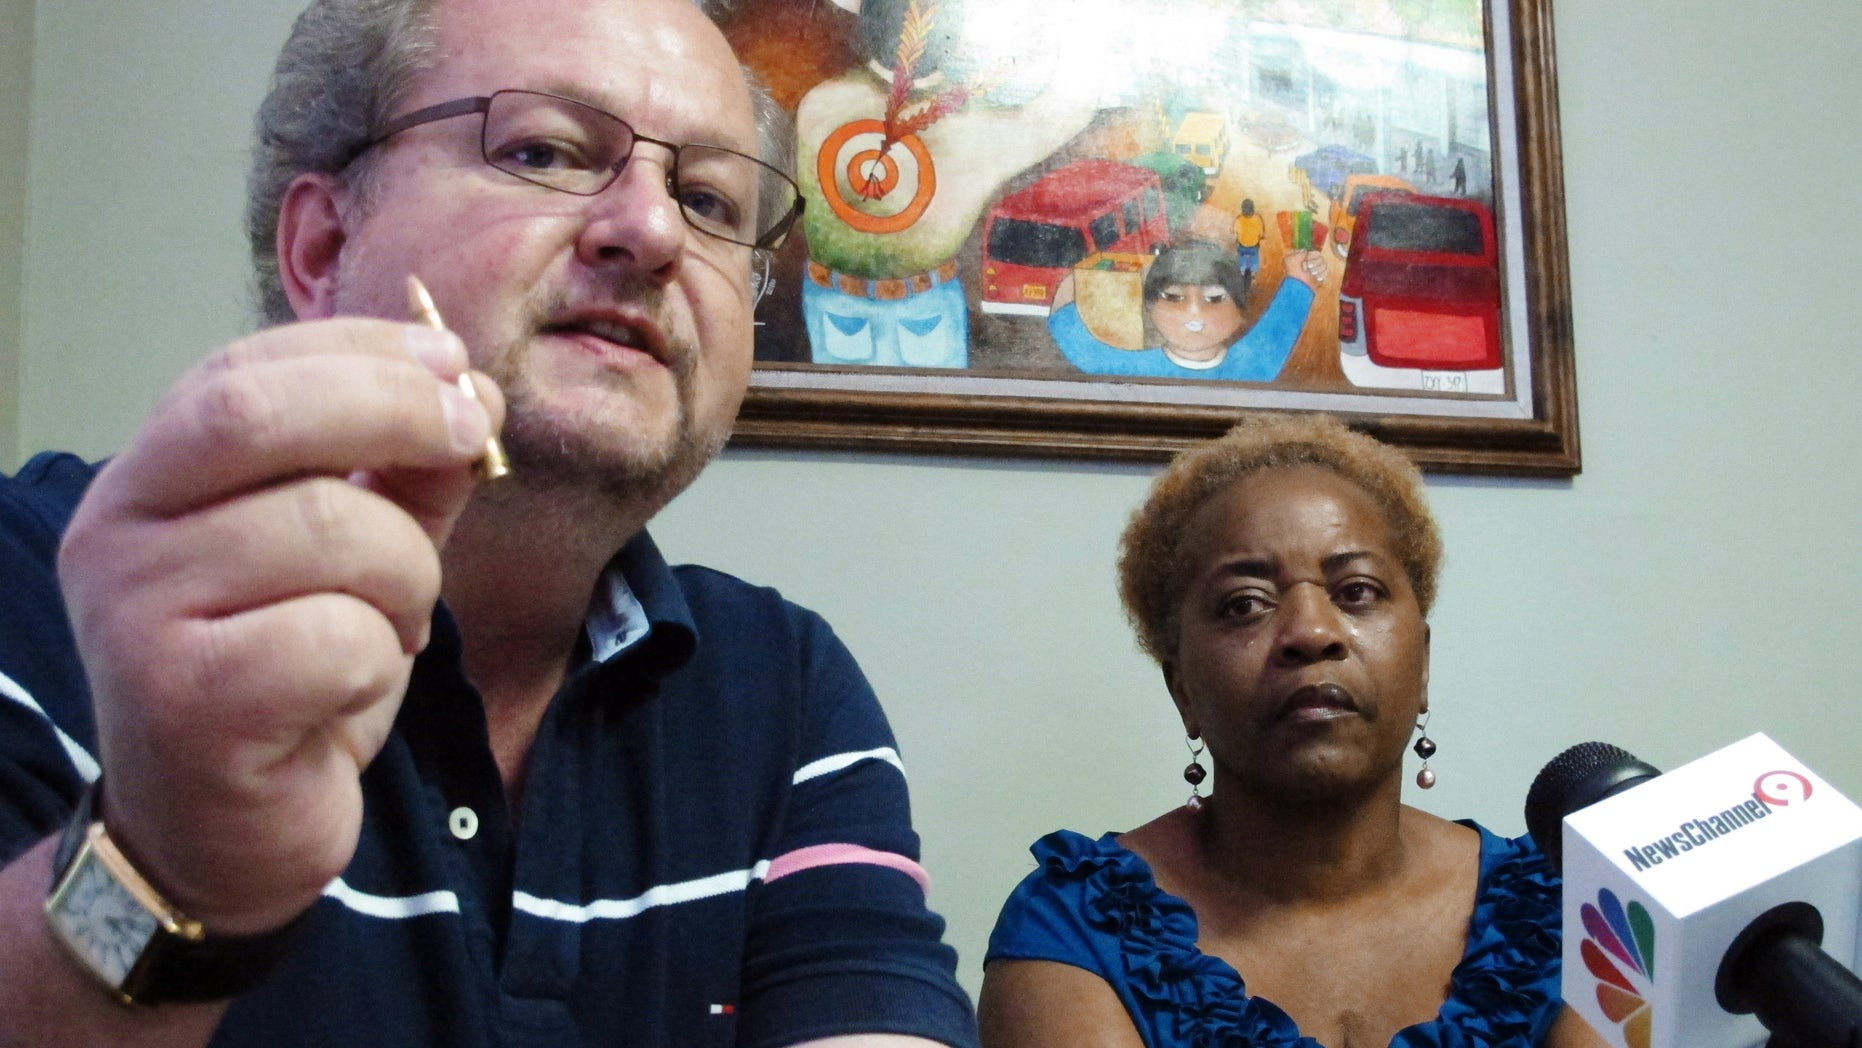 Kevin Huckabee, left, who also claims his son was wrongfully arrested in Mexico, holds a bullet as Aletha Smith, mother of trucker Jabin Bogan looks on during a news conference, Wednesday, May 2, 2012 in El Paso, Texas. Bogan, who was arrested with 268,000 bullets in Mexico, claims he took a wrong turn that led him into Mexico while transporting the cargo for an ammunition dealer in Arizona. (AP Photo/Juan Carlos Llorca)